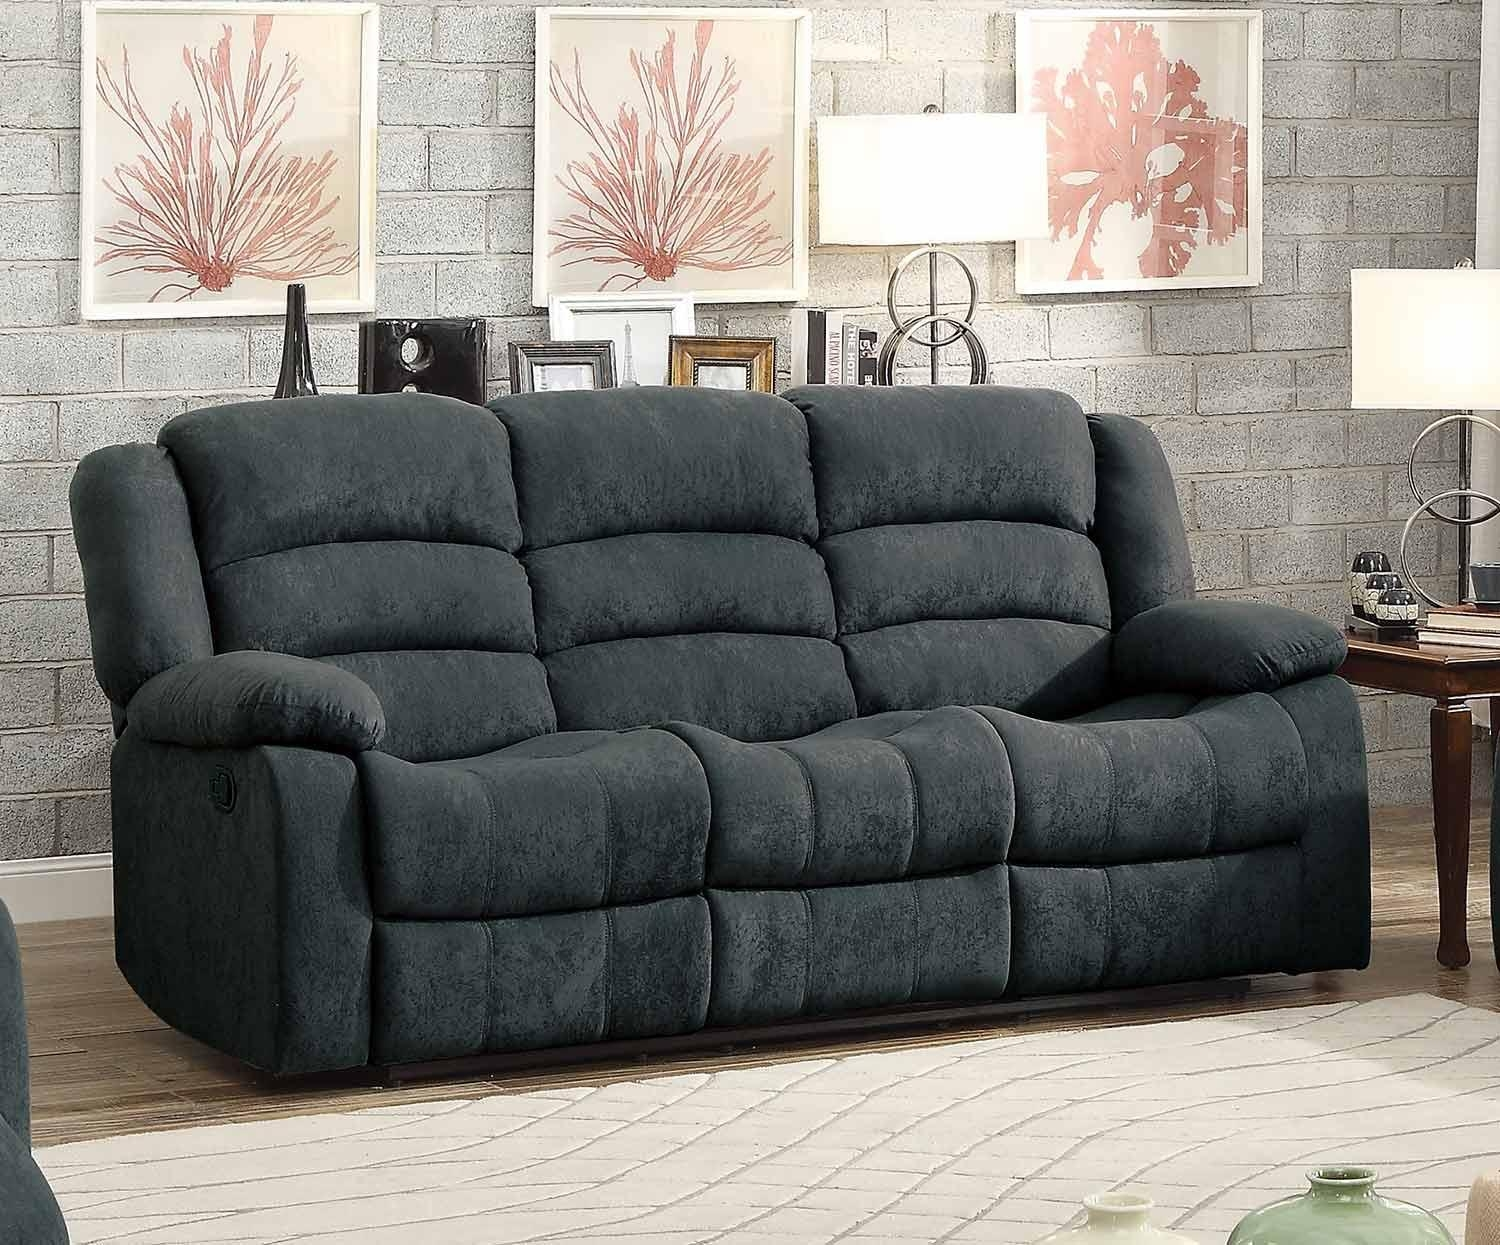 Homelegance Greenville Reclining Sofa Set – Blue Grey 8436Gy Sofa Inside Blue Grey Sofas (Image 12 of 20)